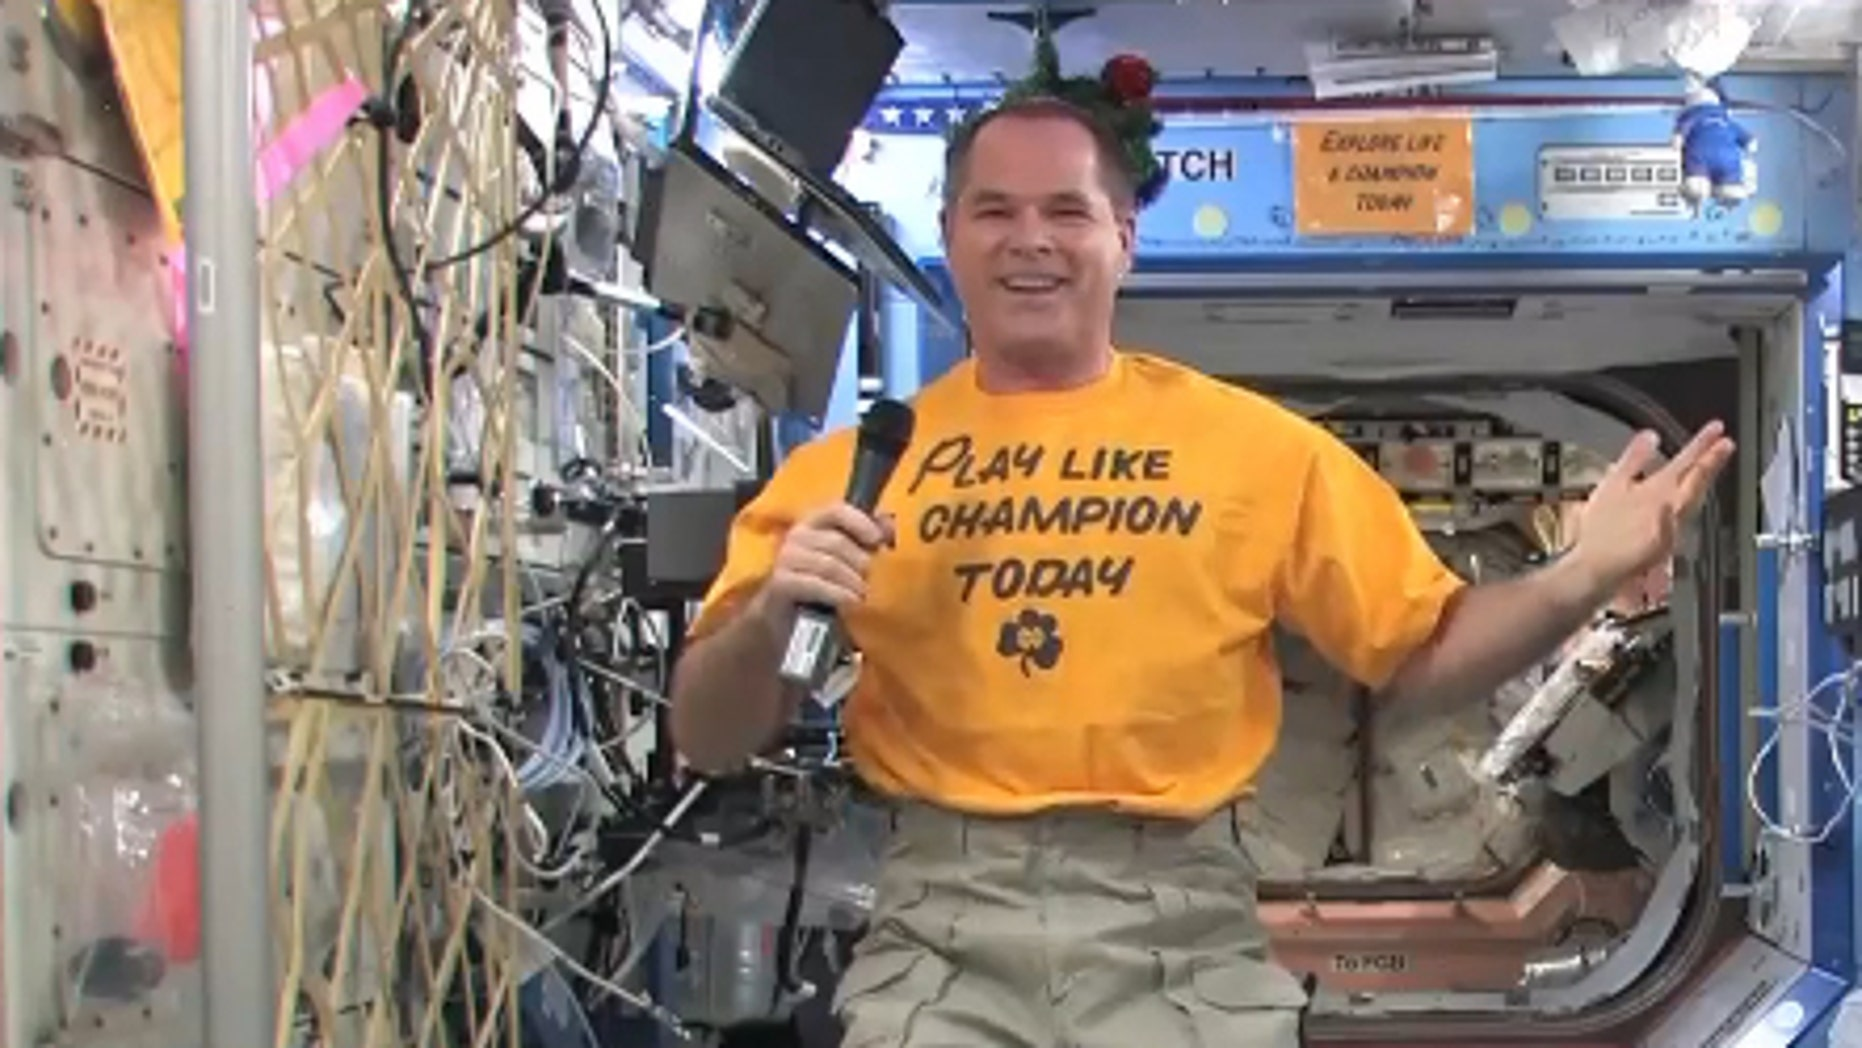 """NASA astronaut Kevin Ford smiles while wearing his Notre Dame """"Play Like a Champion Today"""" shirt on Dec. 26 to support the college's BCS Championship Game against Alabama on Jan. 7, 2013. Ford is the commander of Expedition 34 aboard the Intern"""